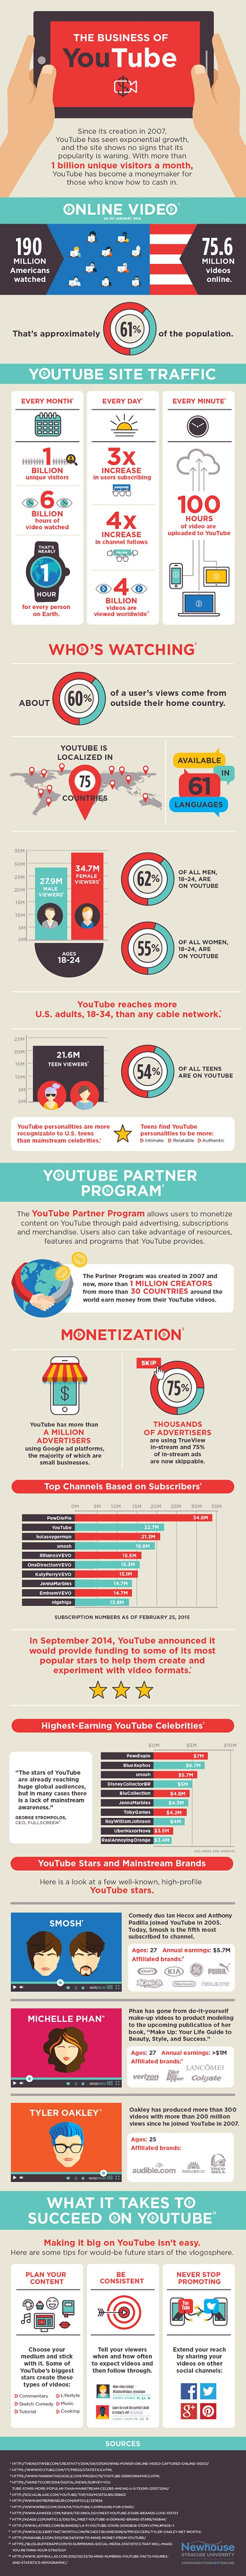 YouTube marketing and the business of YouTube infographic